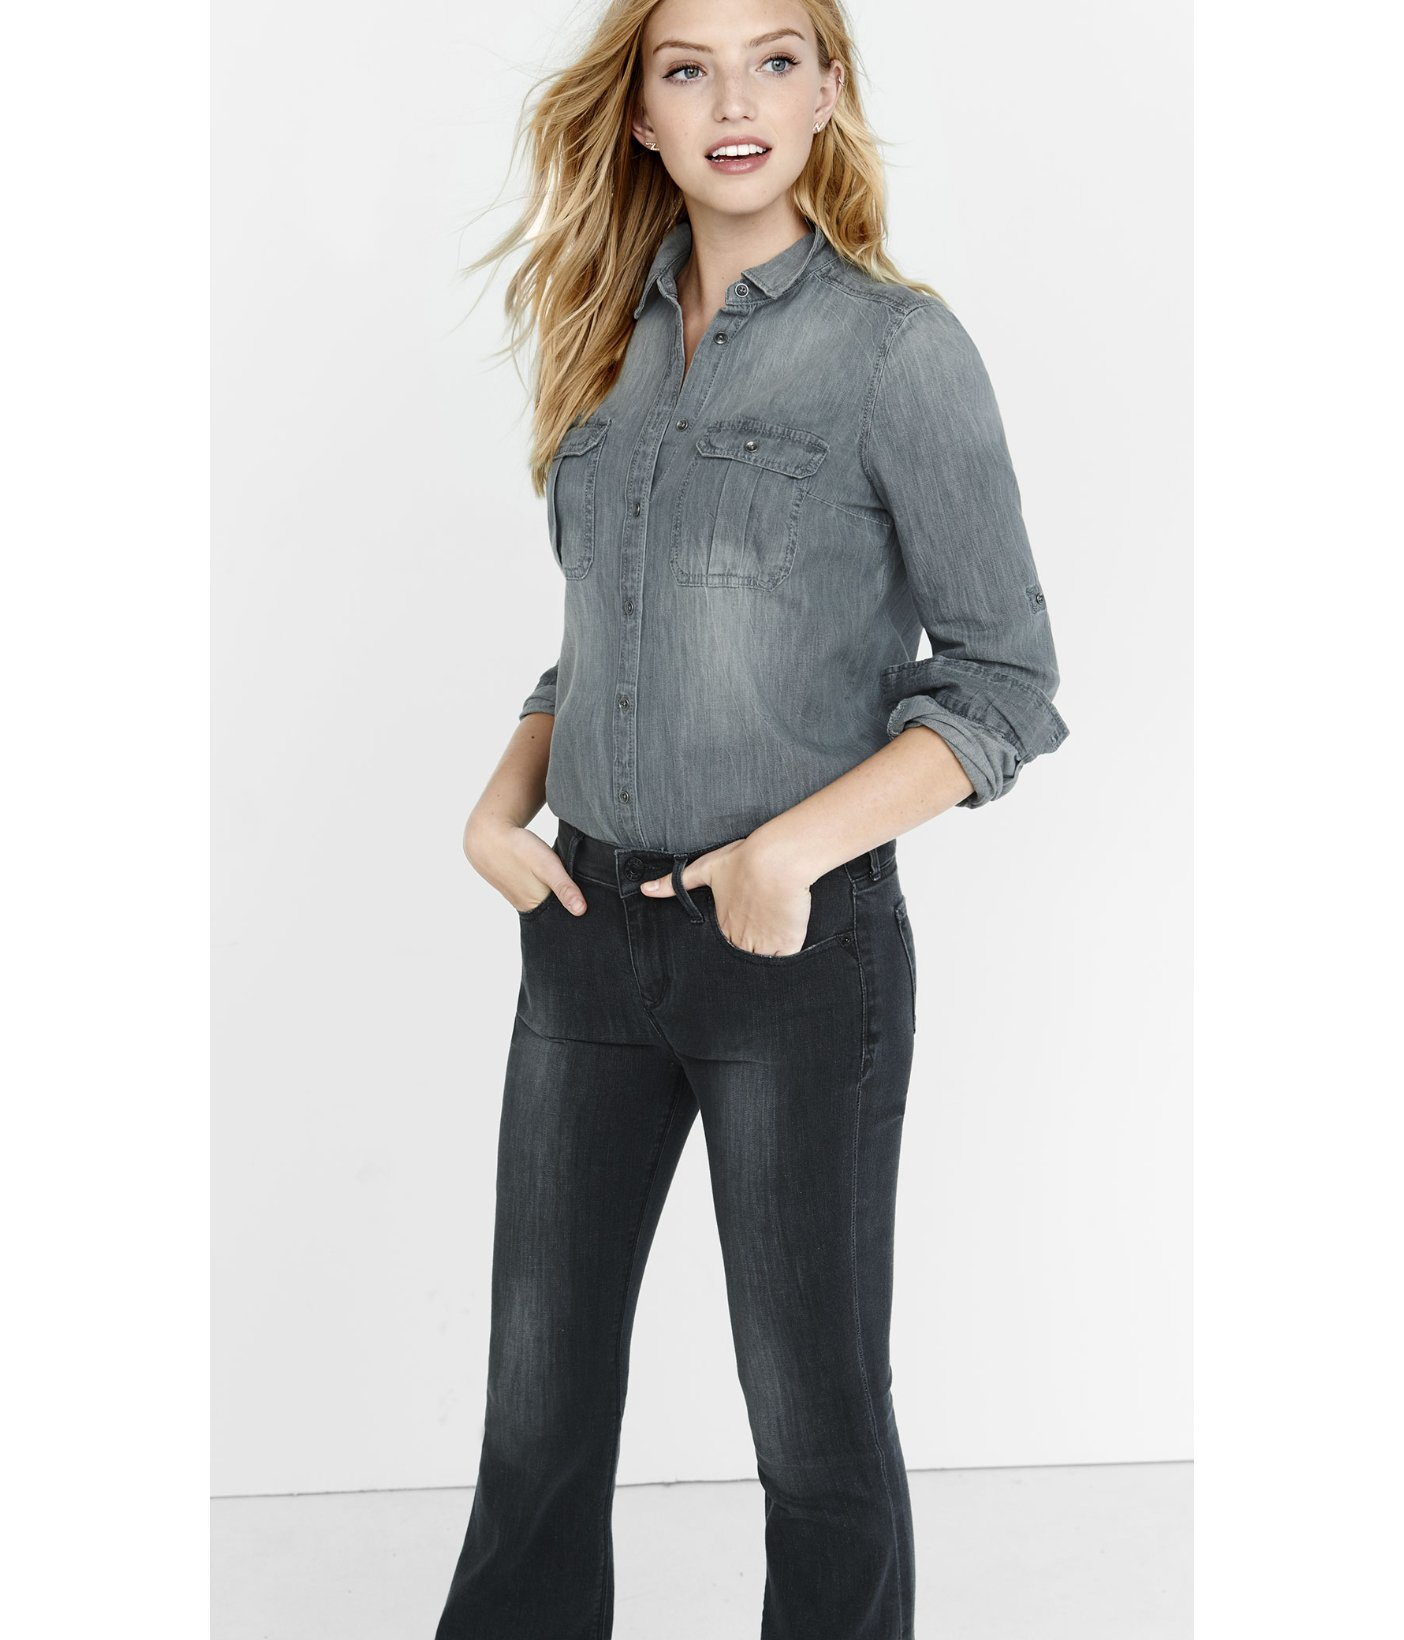 Express Gray Wash Fitted Denim Shirt in Gray | Lyst